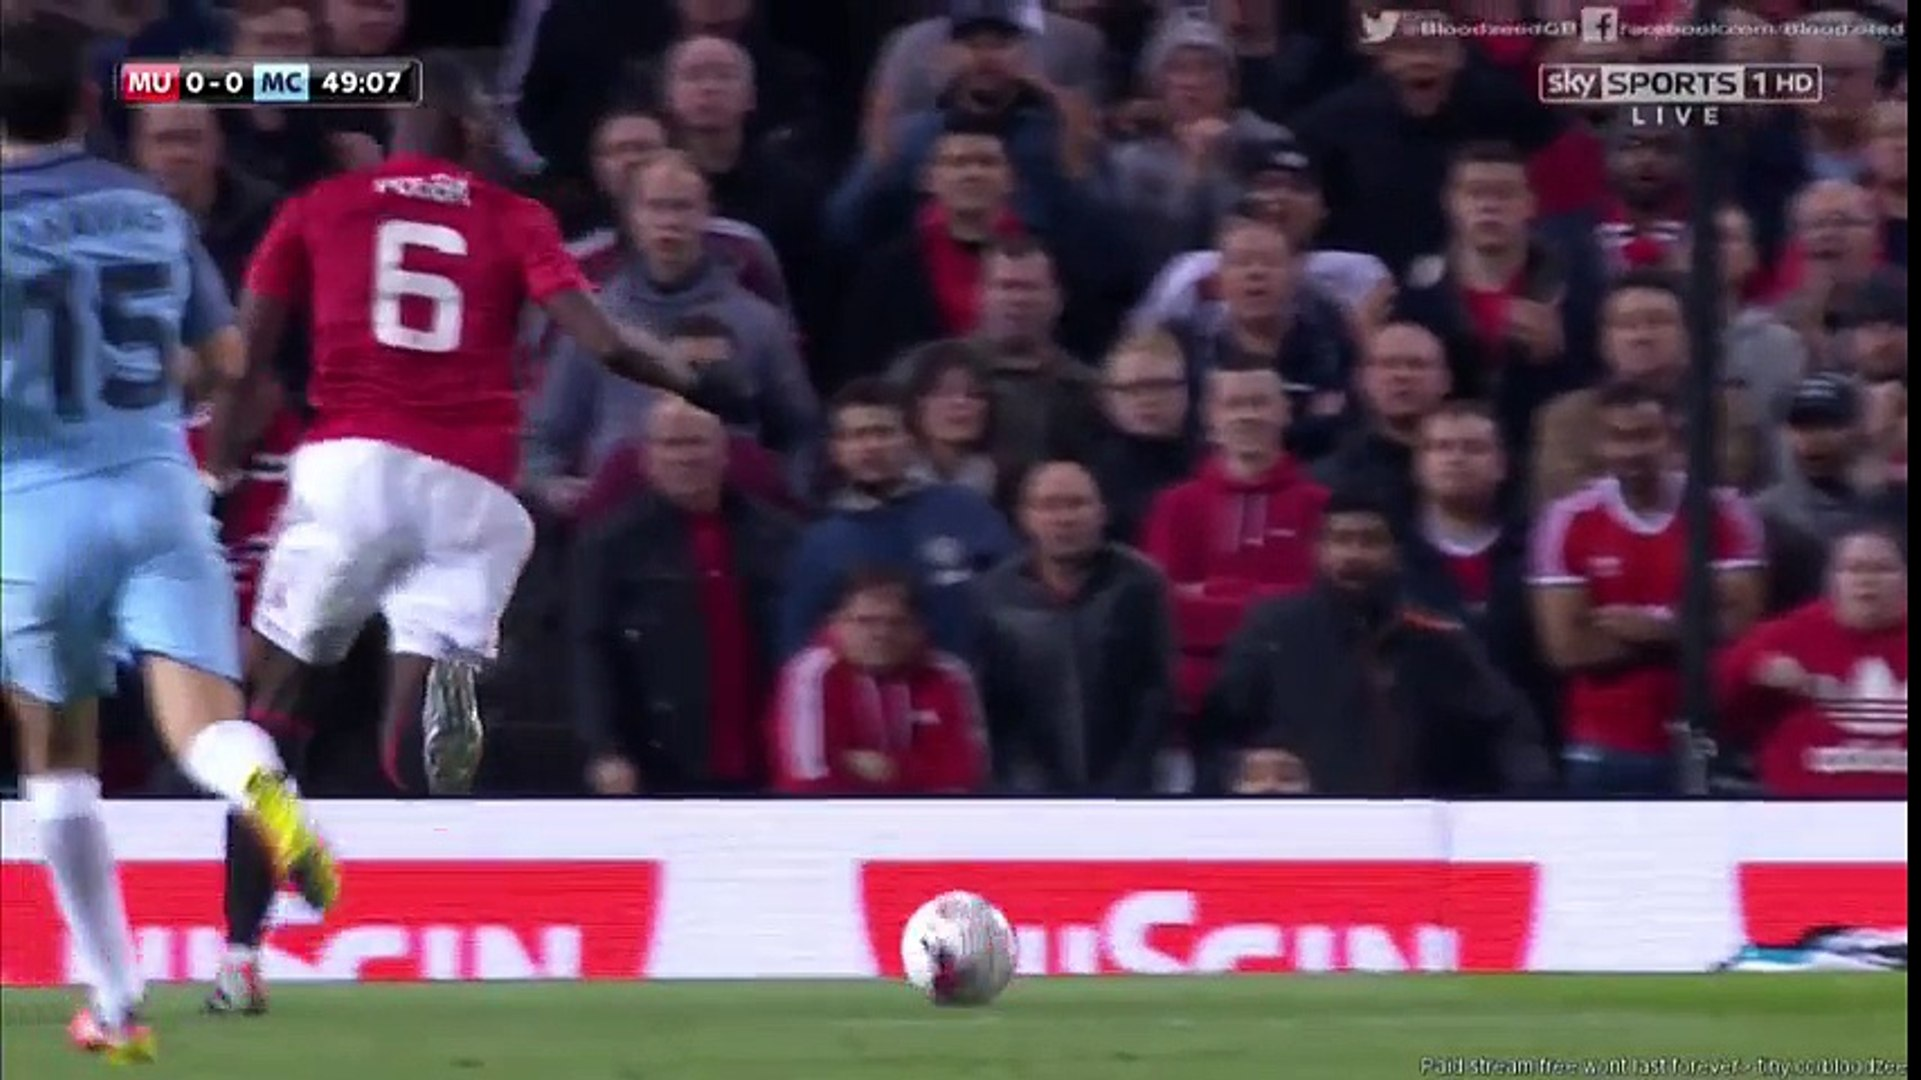 [Highlight] Manchester United 1 - 0 Manchester City : ENGLISH CAPITAL ONE CUP 2016-2017